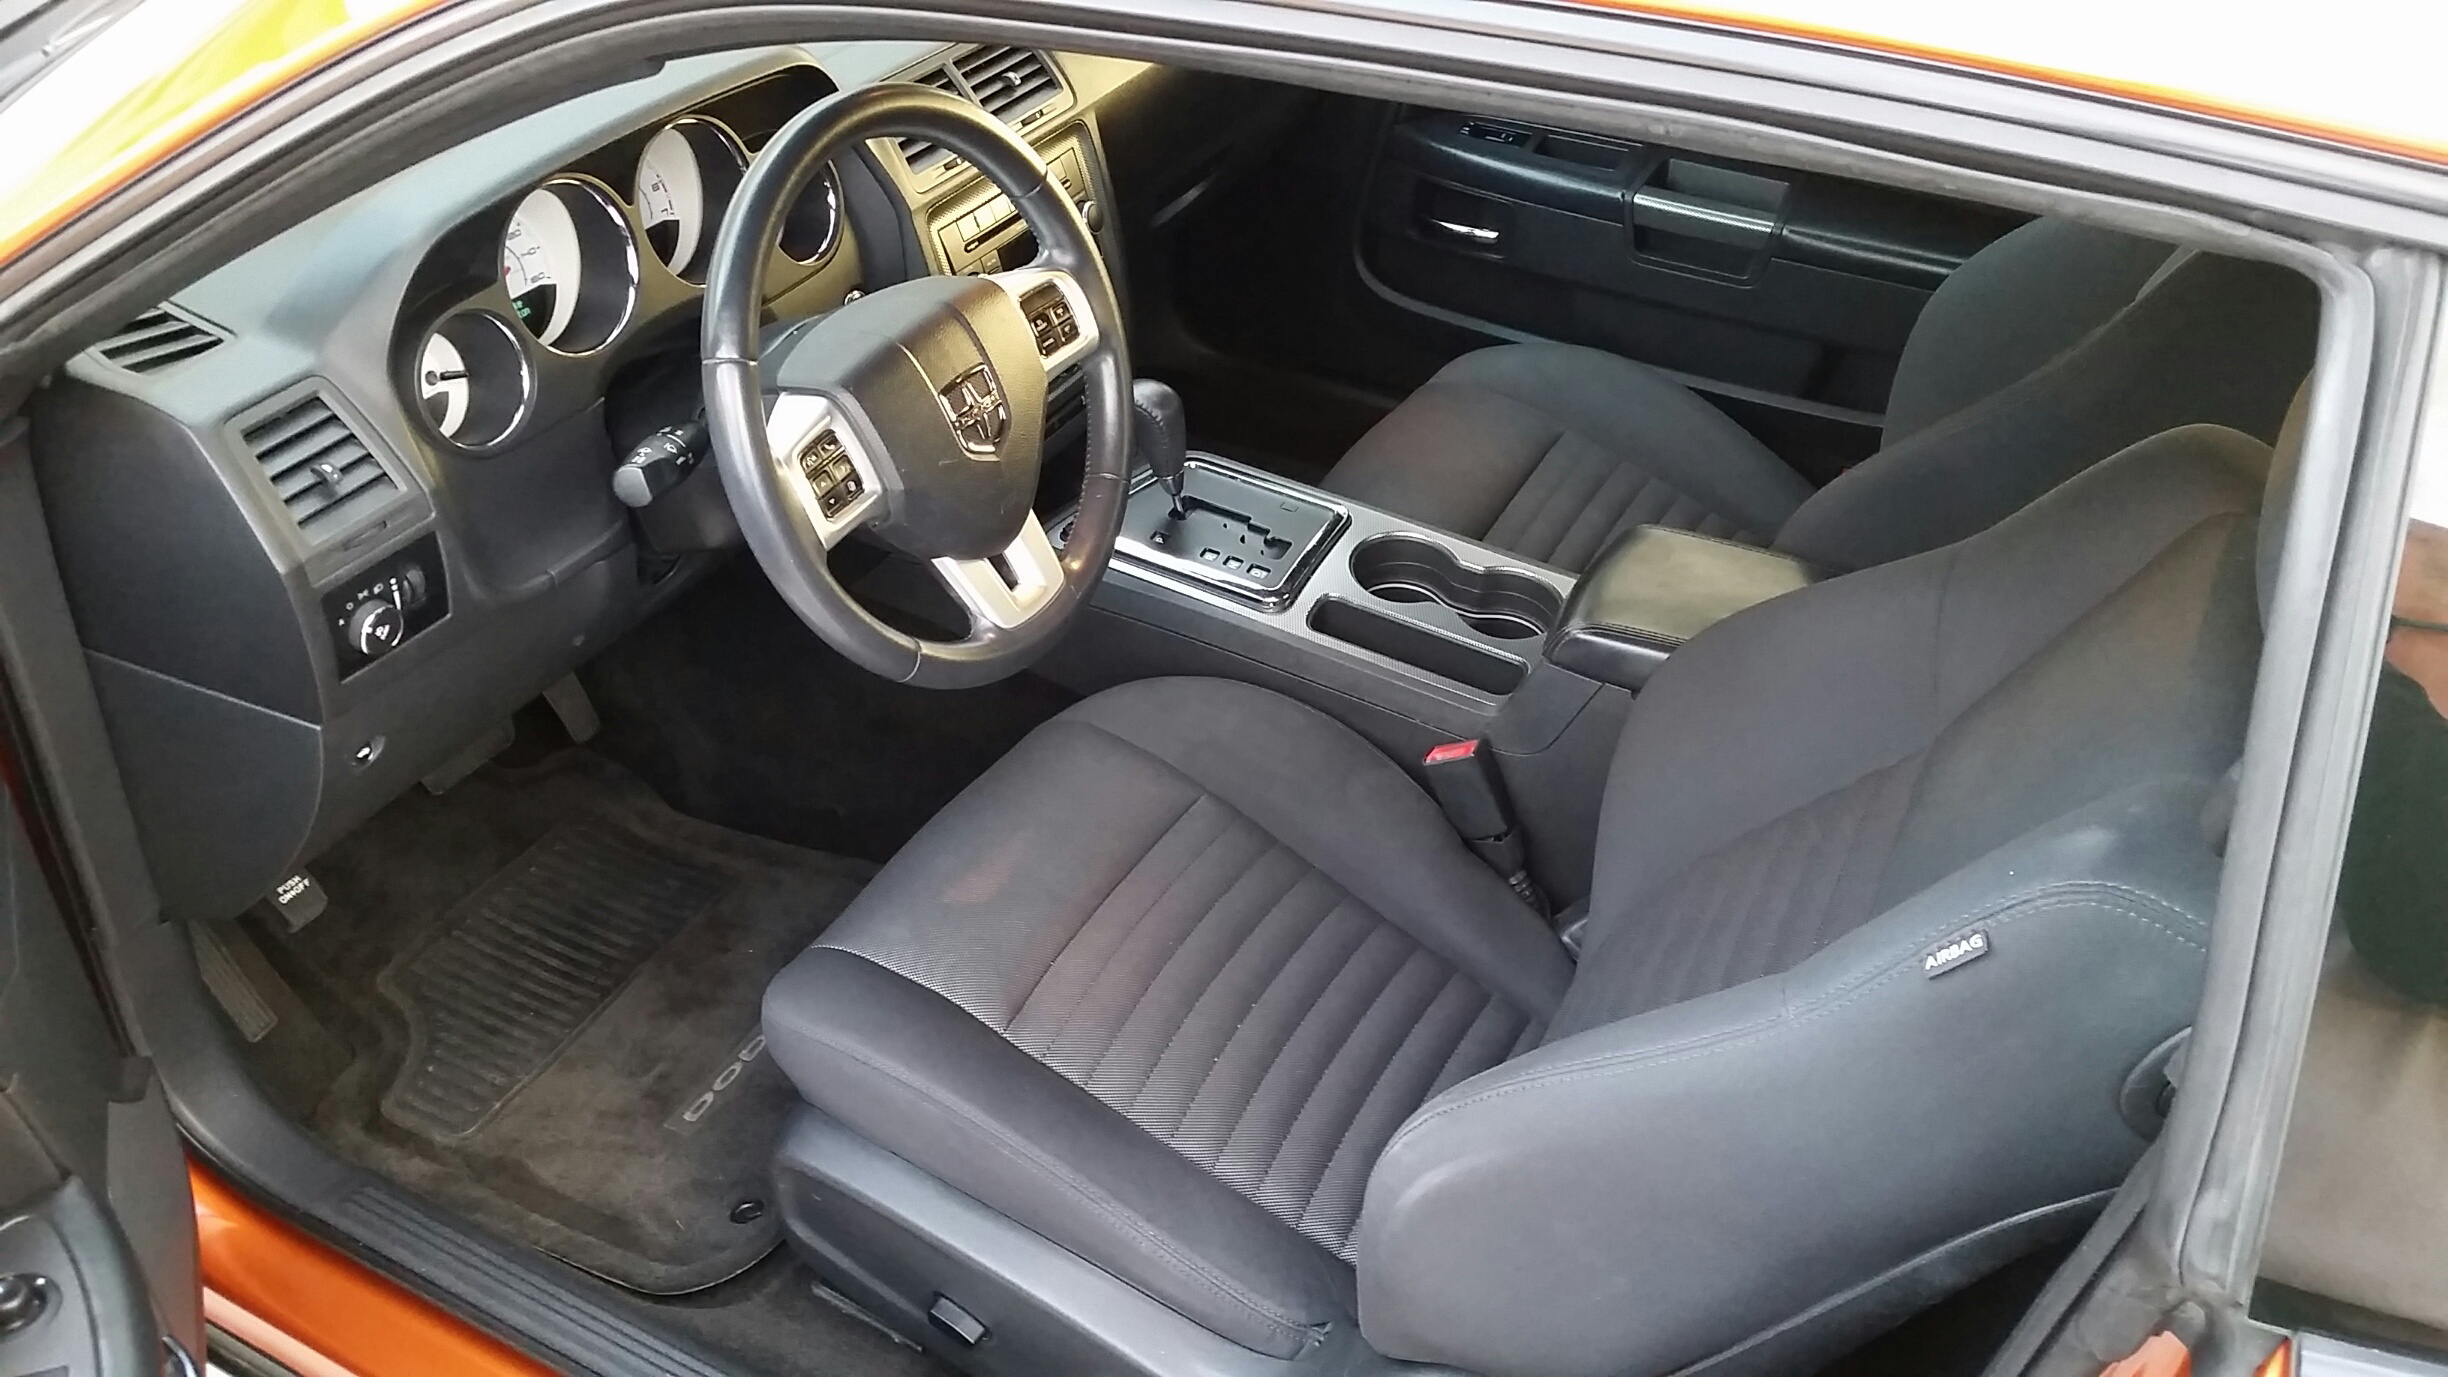 After being treated to Eagle One's Carpet & Upholstery Cleaner, and Interior Detailer, this 80,000-mile Dodge Challenger R/T interior is almost like new again.